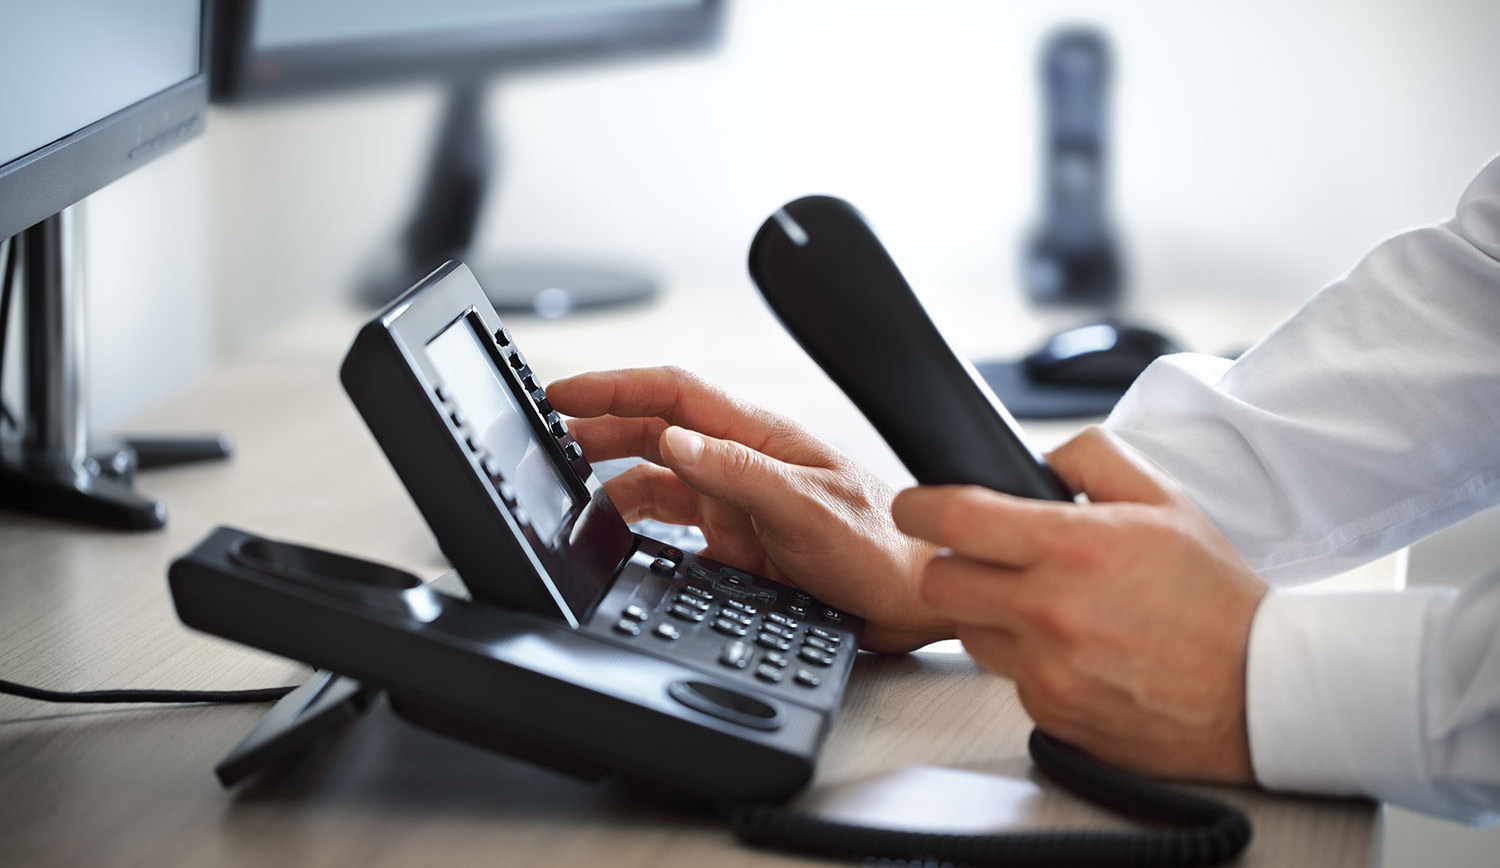 6-Tips-to-Increase-Your-Voicemail-and-Email-Response-Rates.jpg